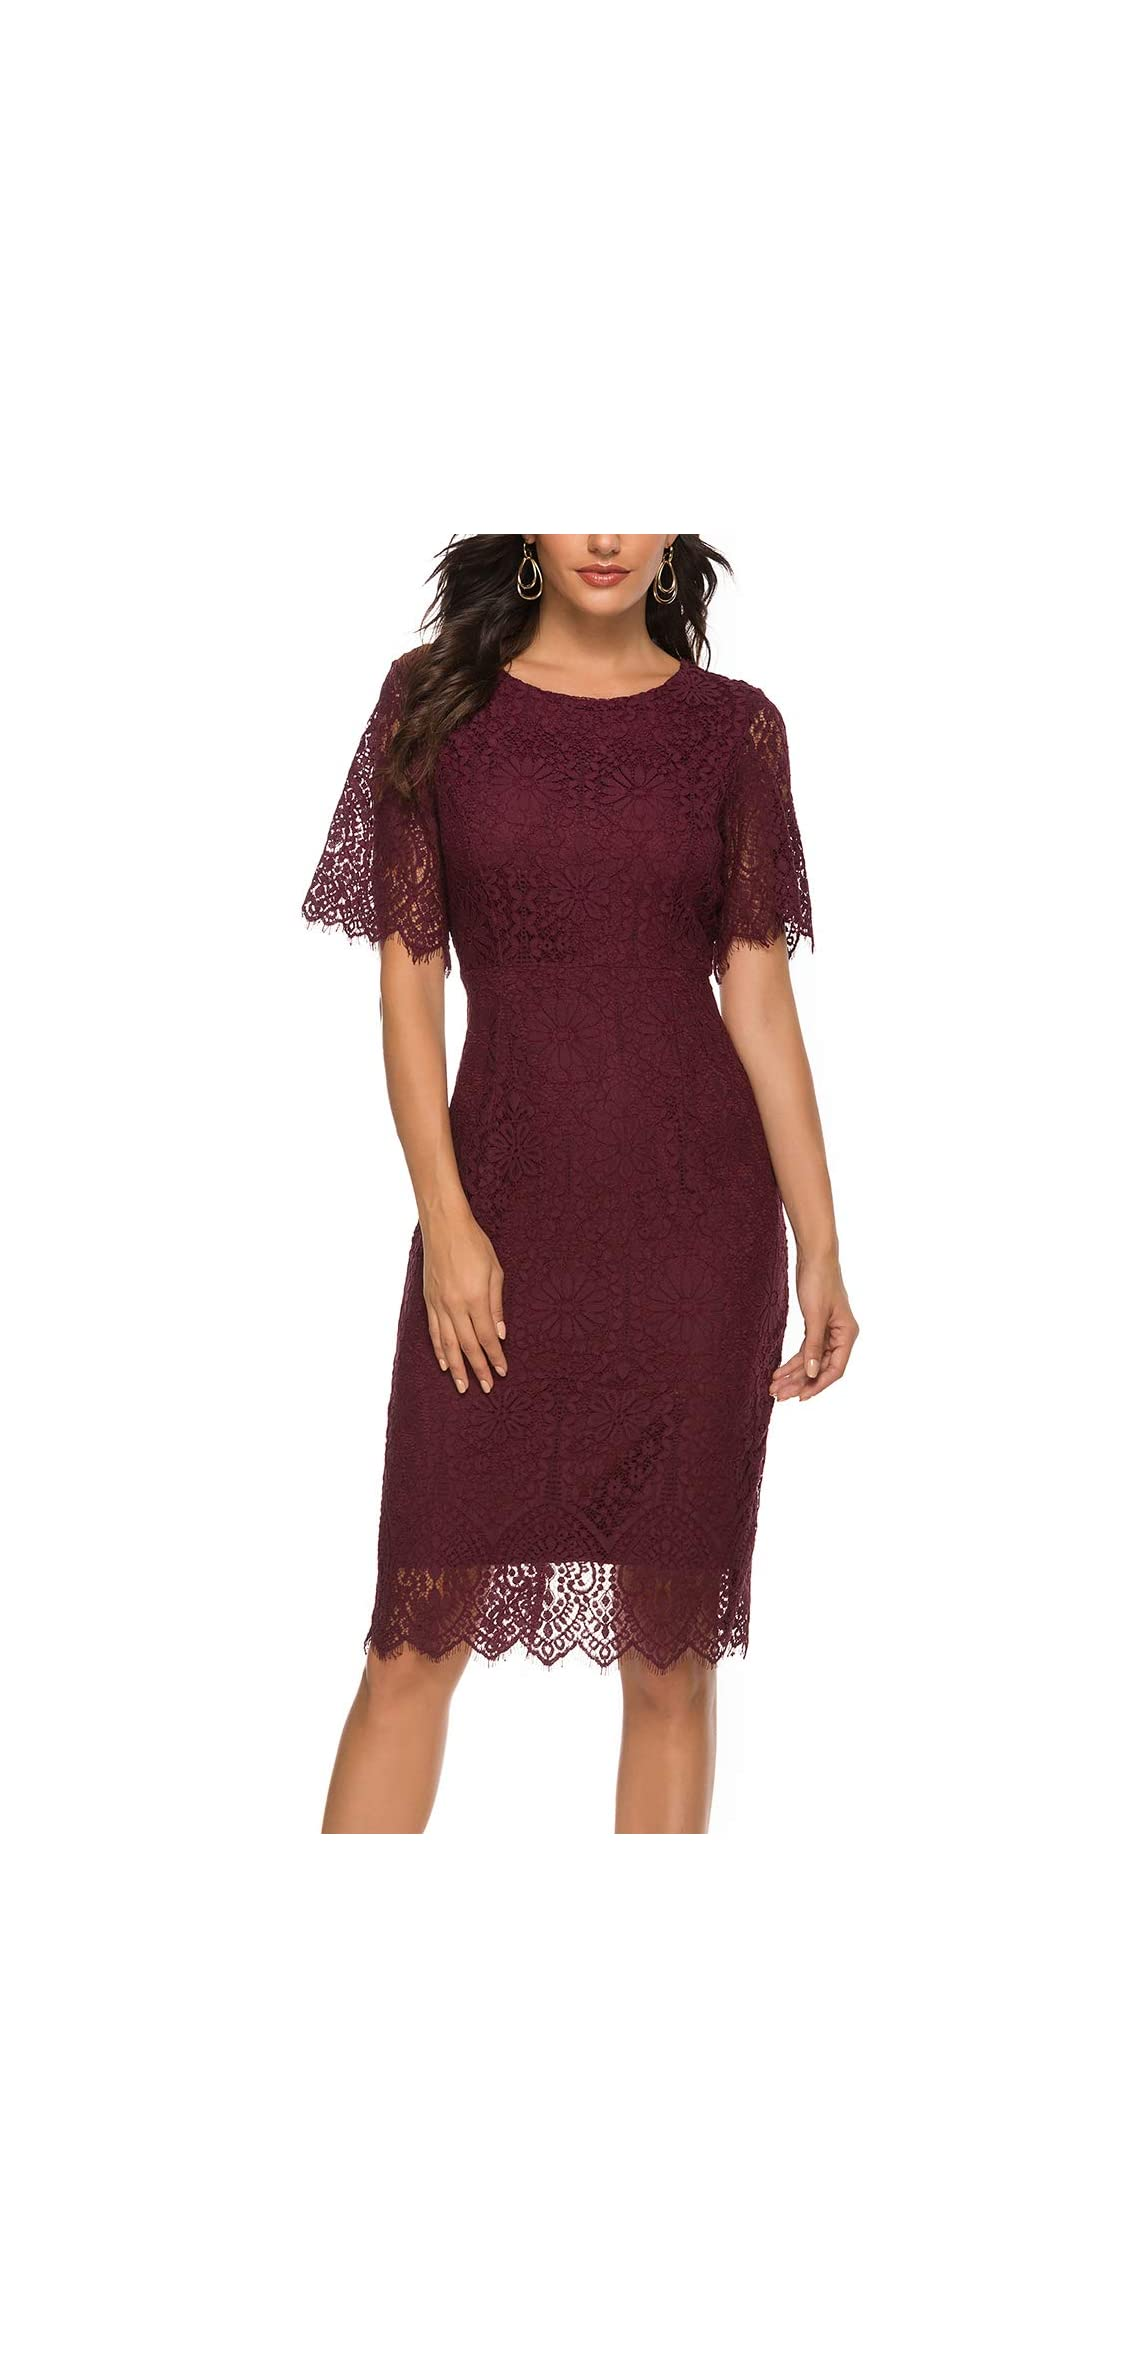 Women's Sleeveless Lace Floral Elegant Cocktail Dress